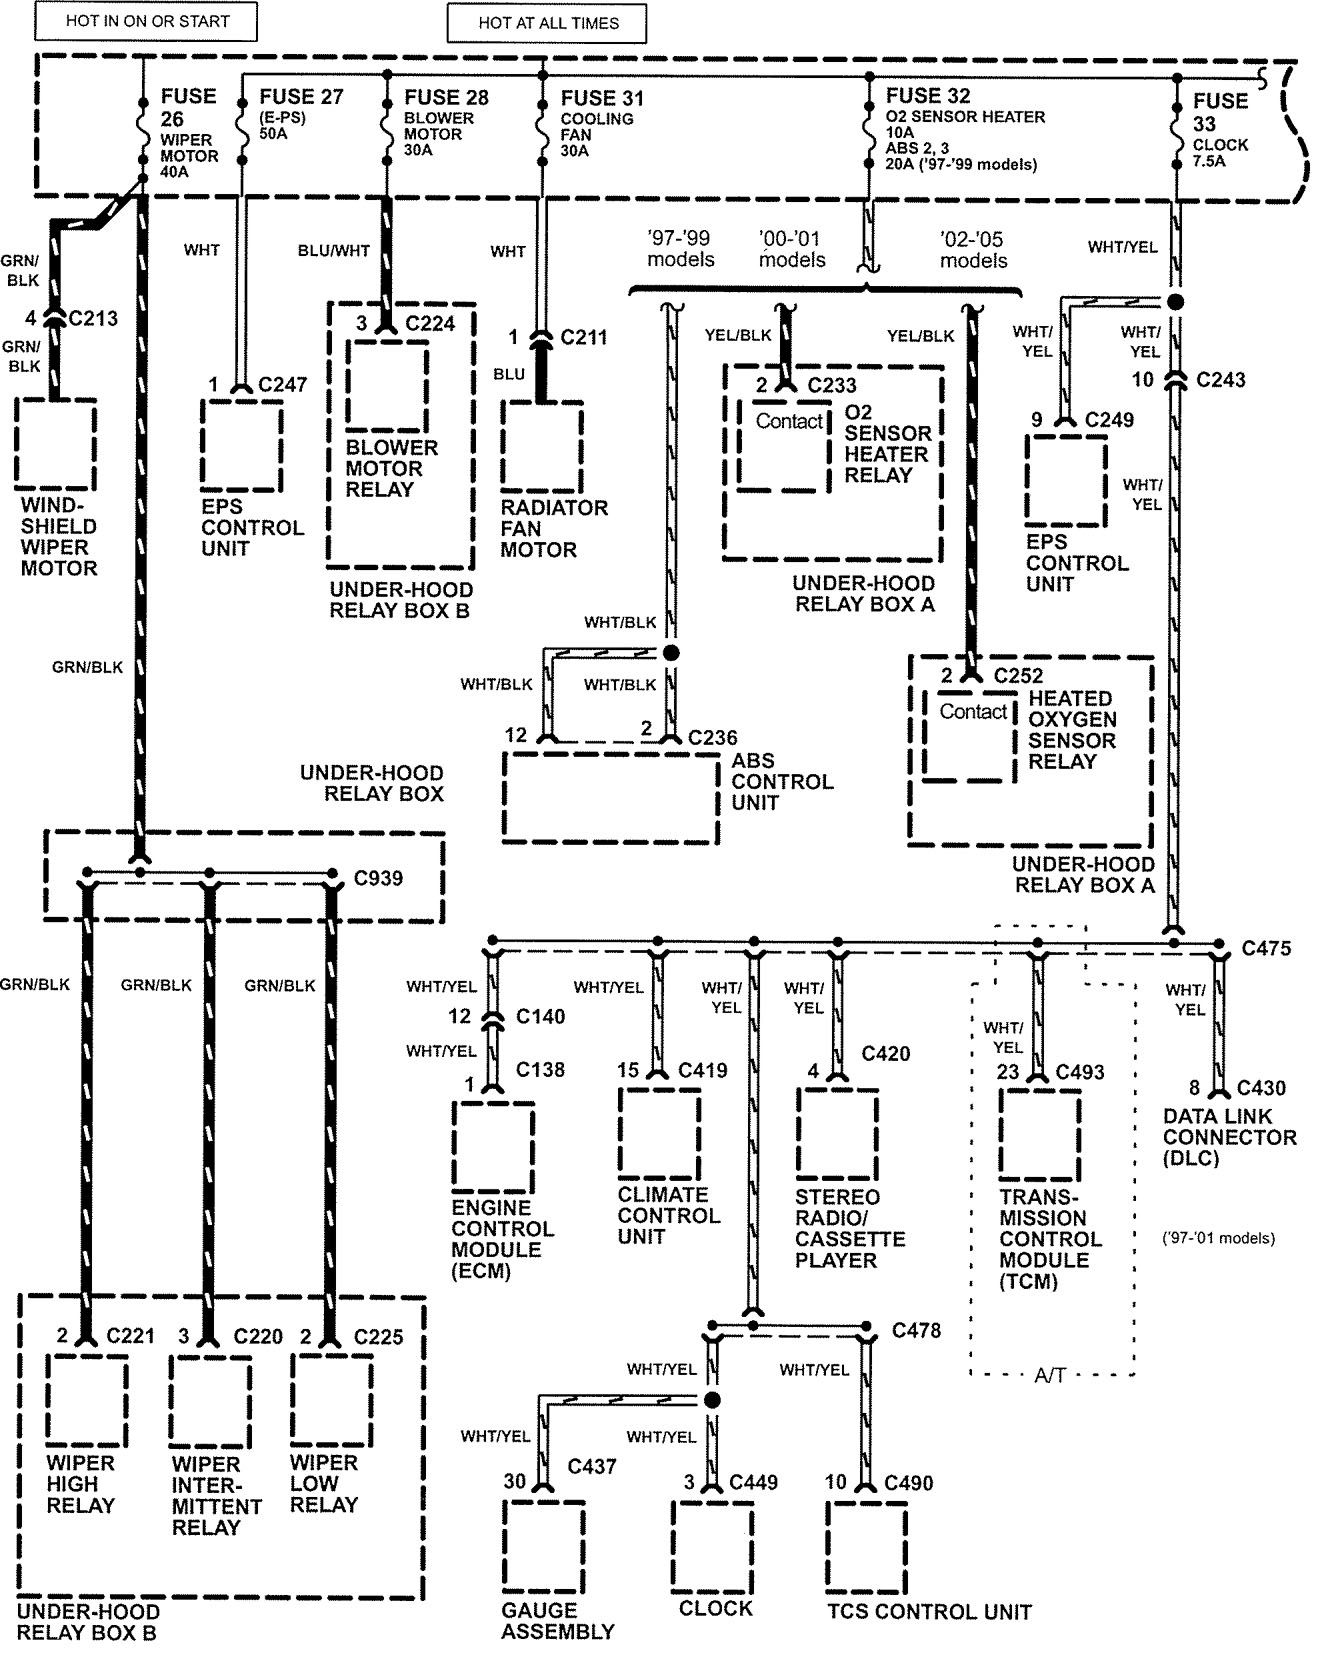 2001 Ford Windstar Fuse Box Diagram 2001 Free Engine Image For User